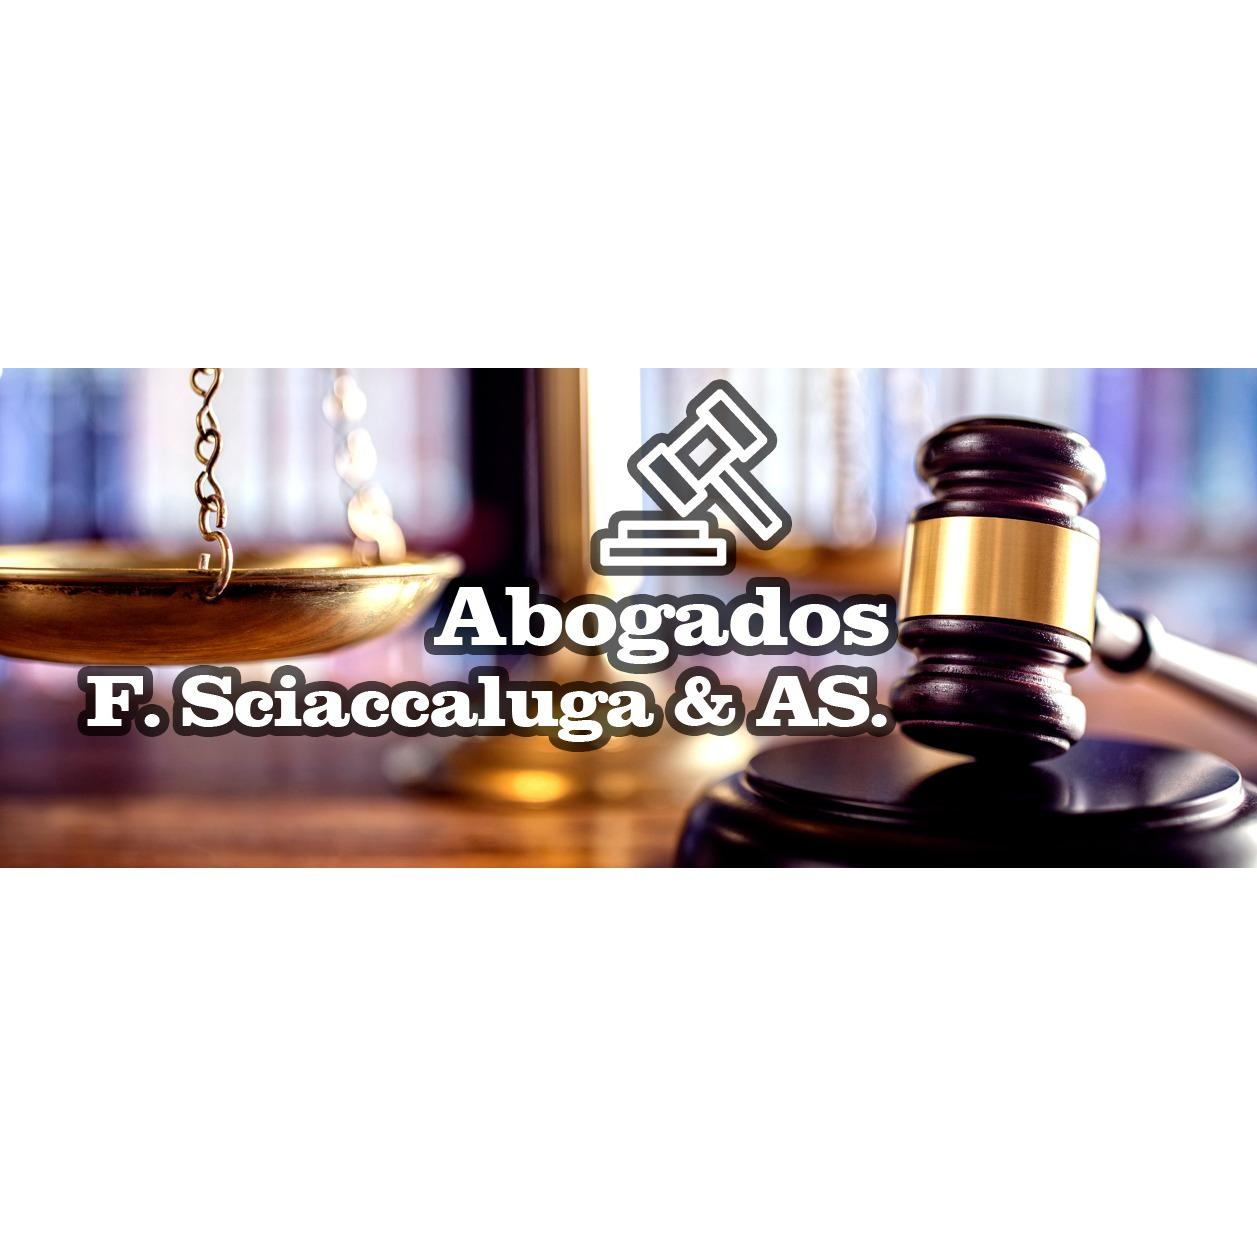 Abogados F. Sciaccaluga & AS